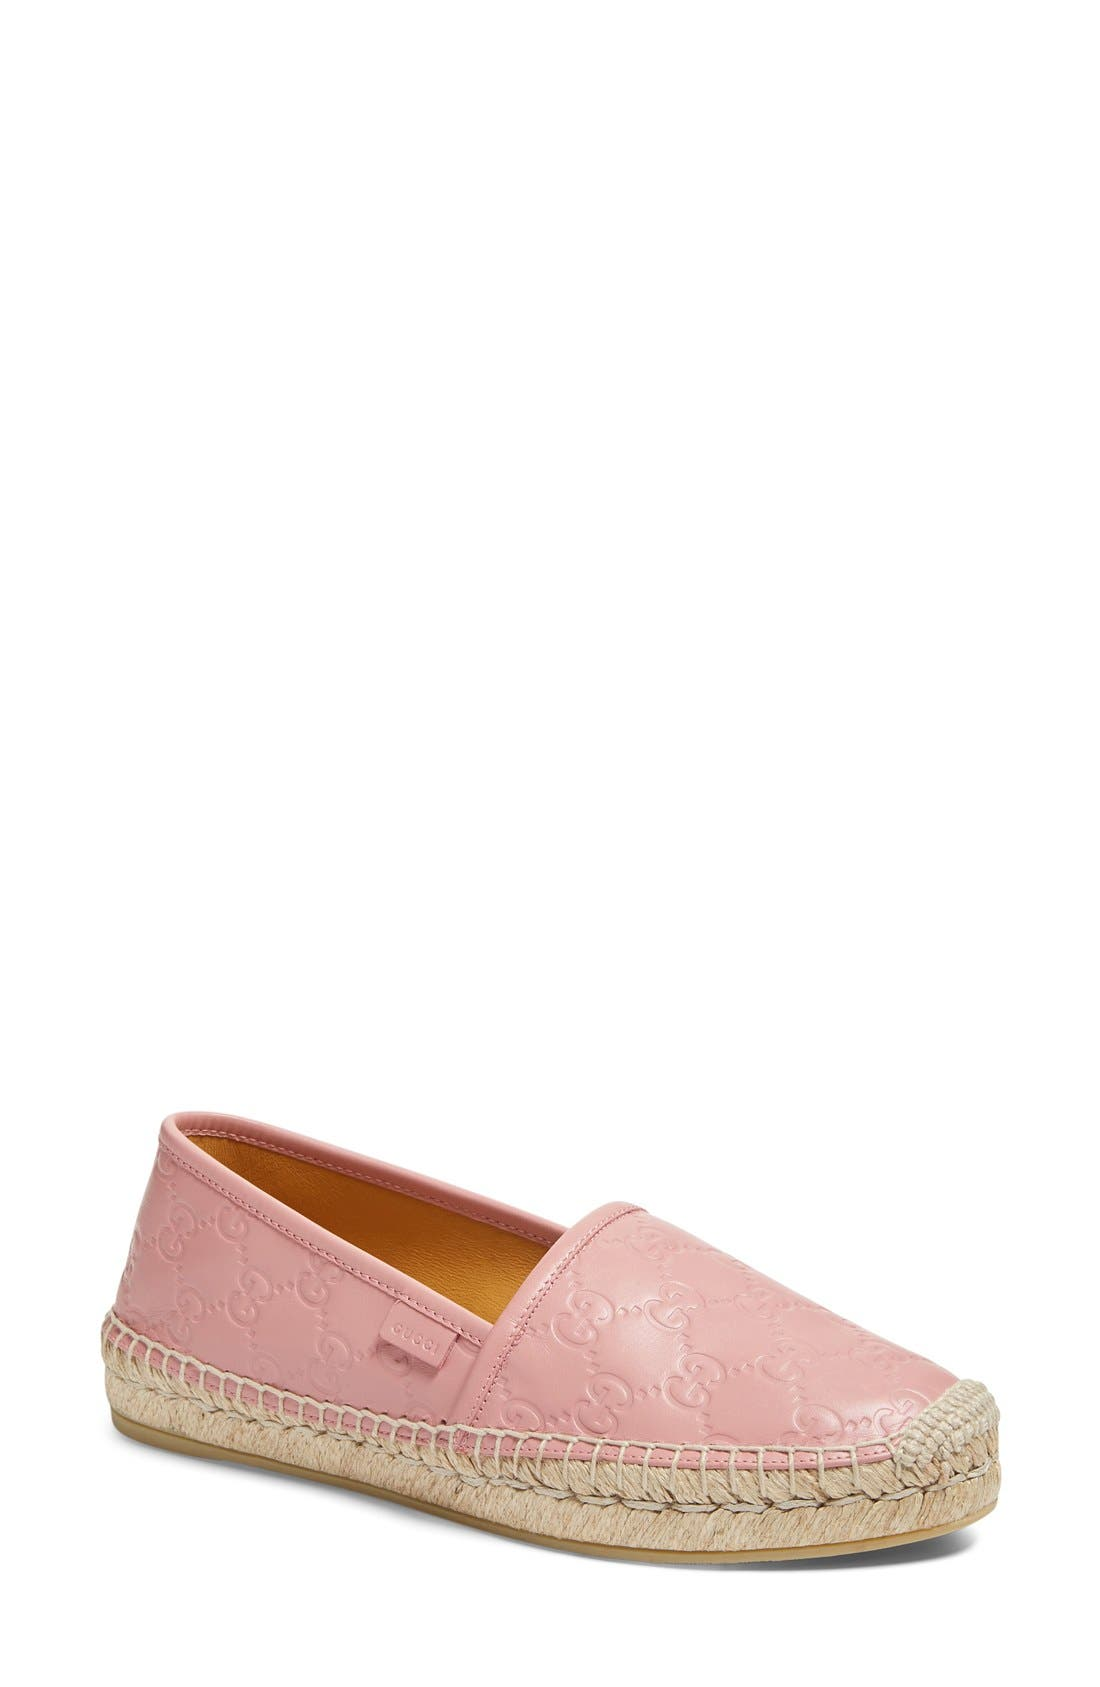 Alternate Image 1 Selected - Gucci Pilar Espadrille Flat (Women)